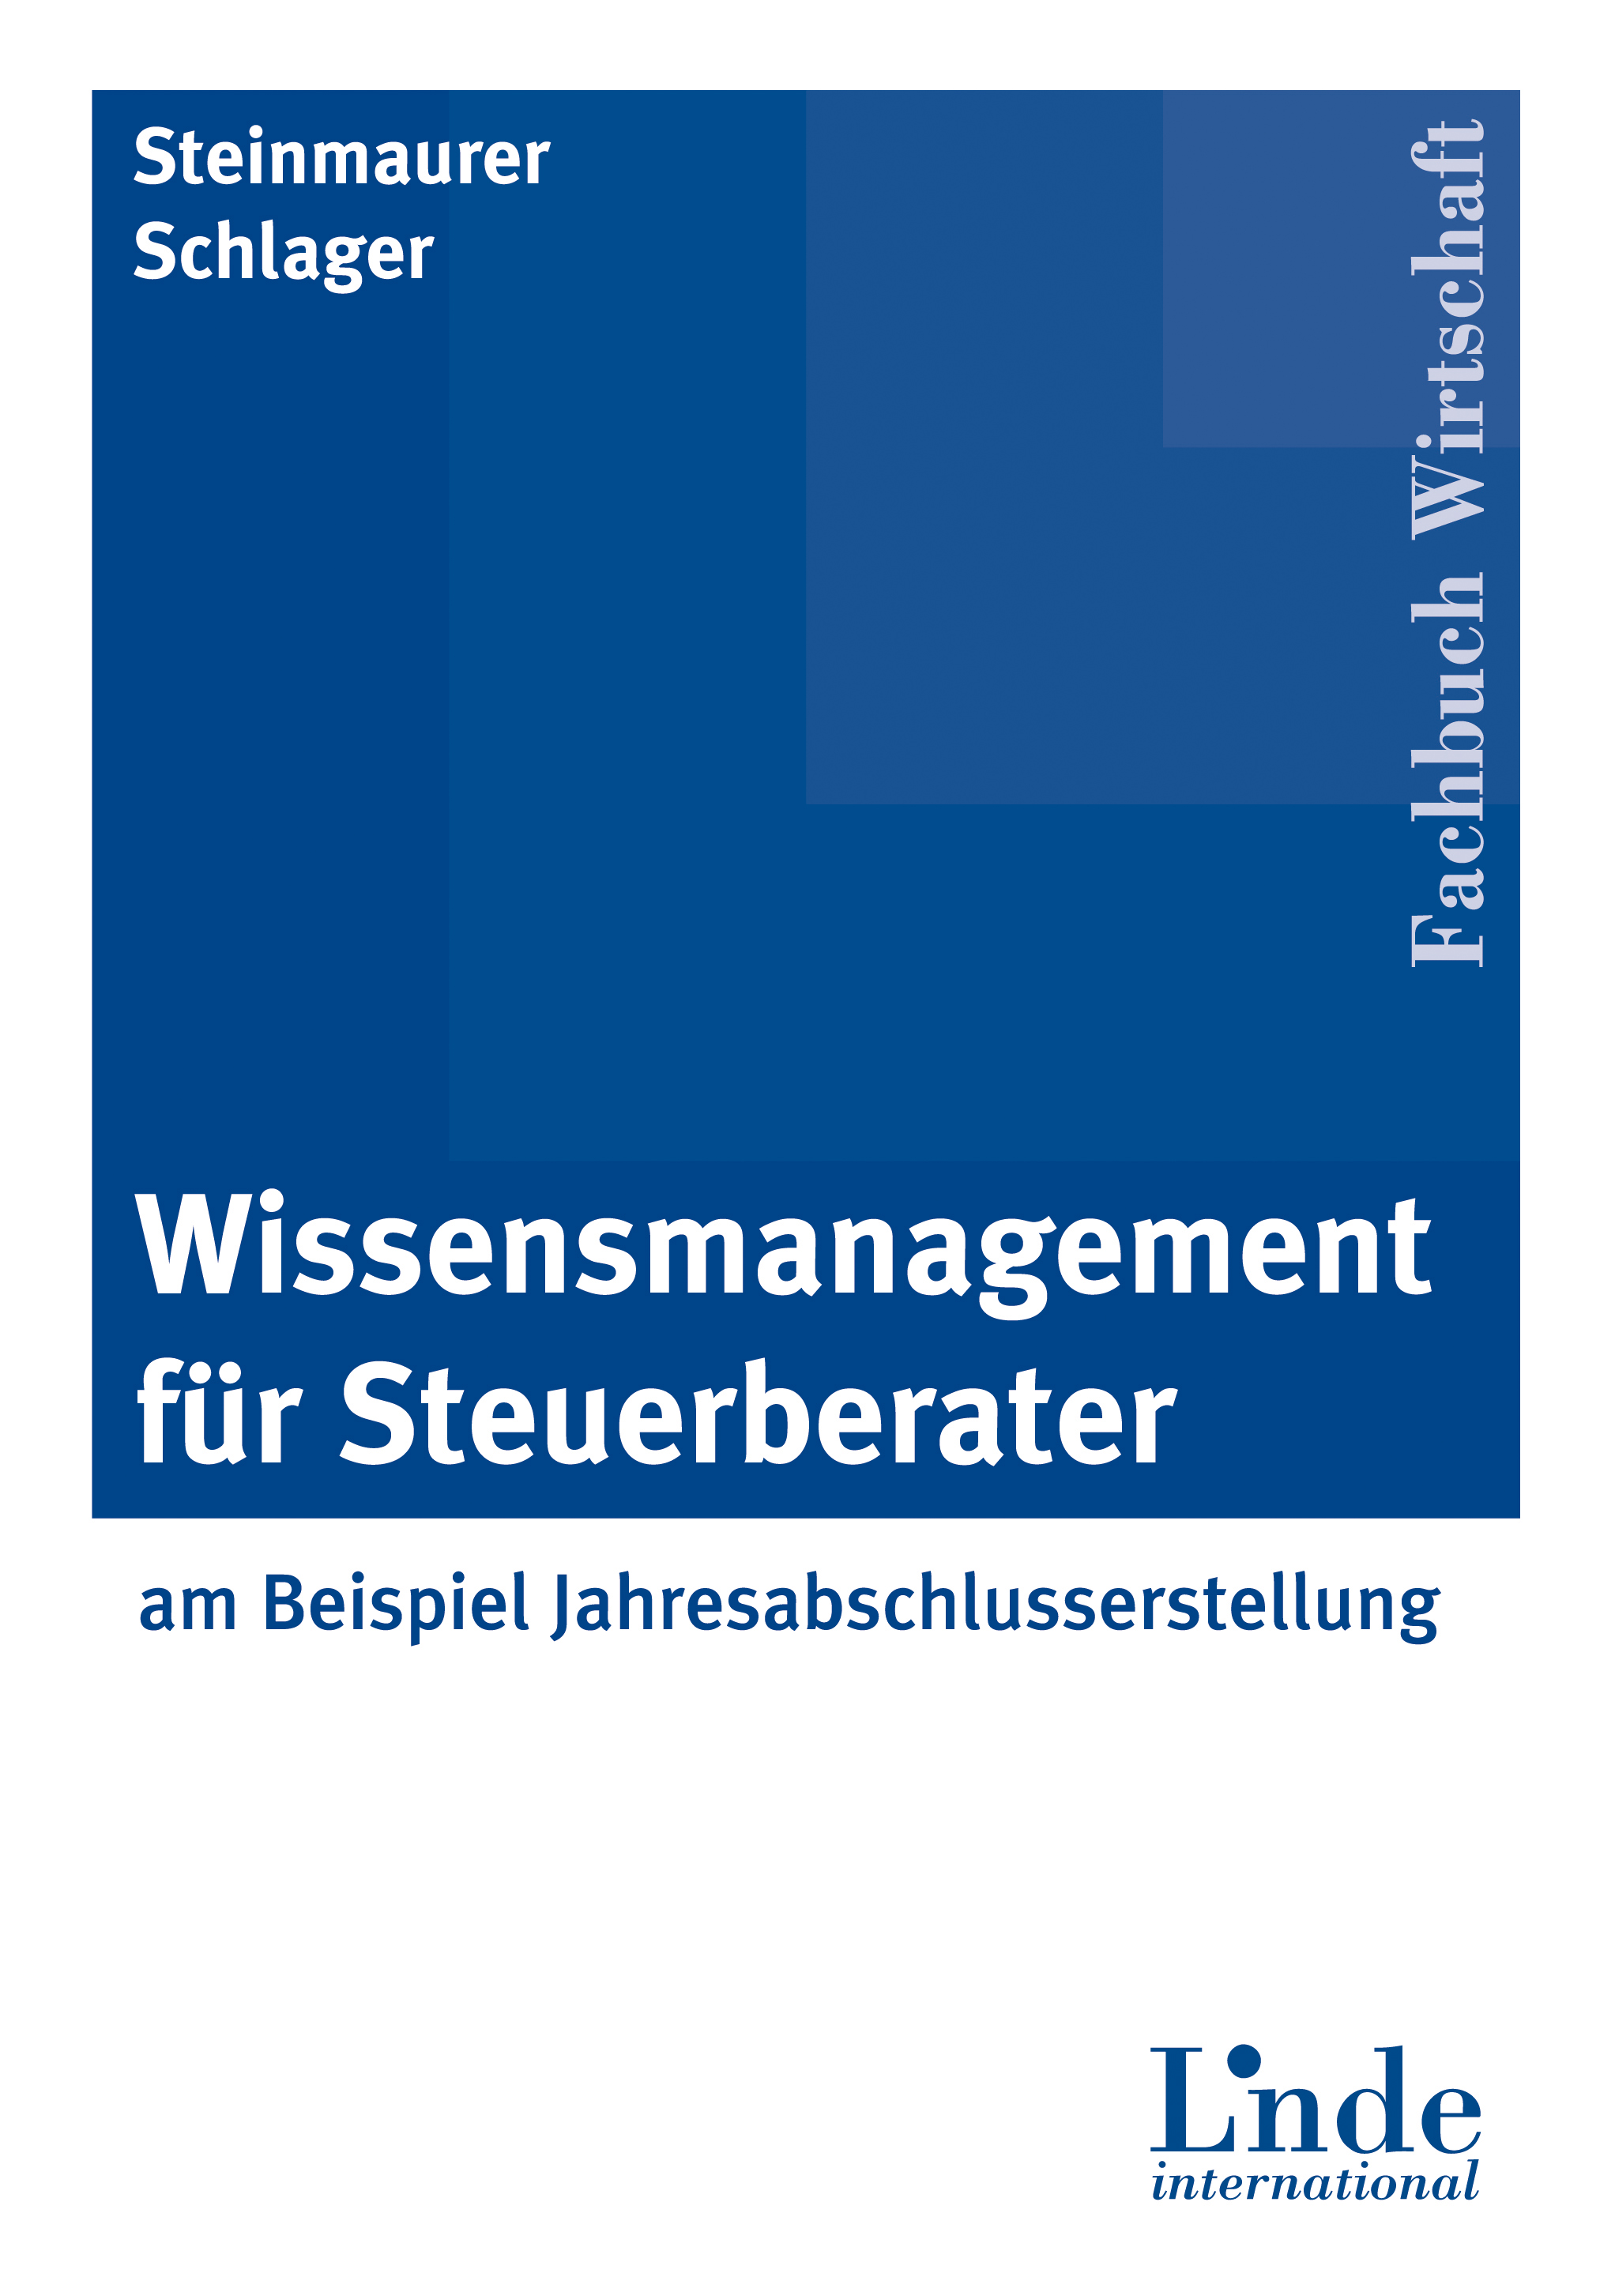 book Prozessmanagement: Ein